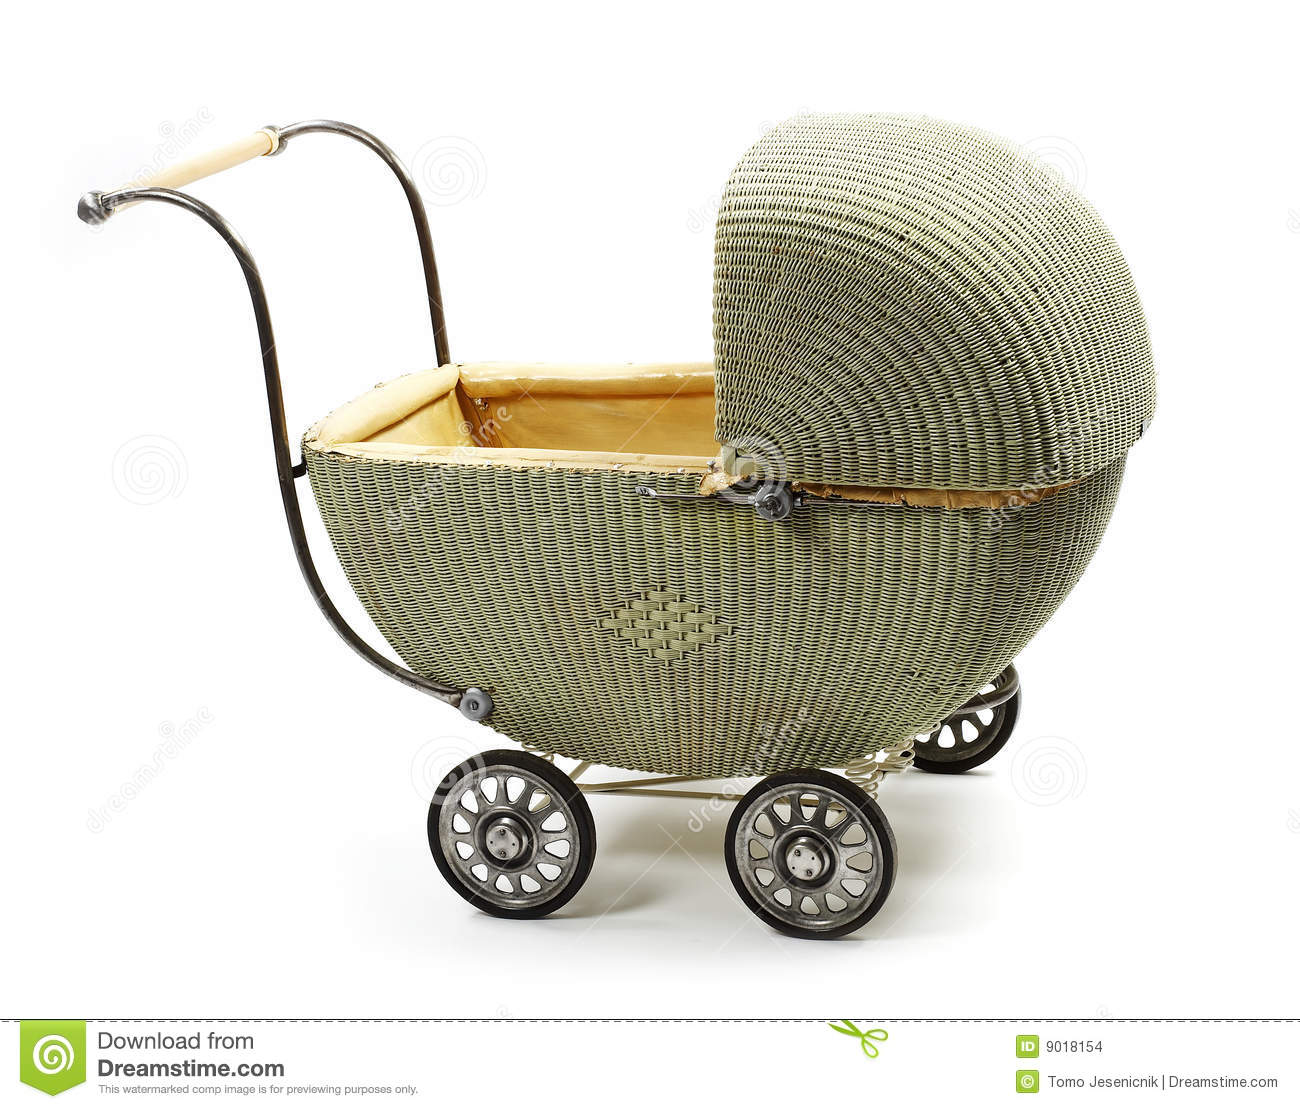 Baby carriage old fashioned Carriage - Dizionario inglese-italiano WordReference